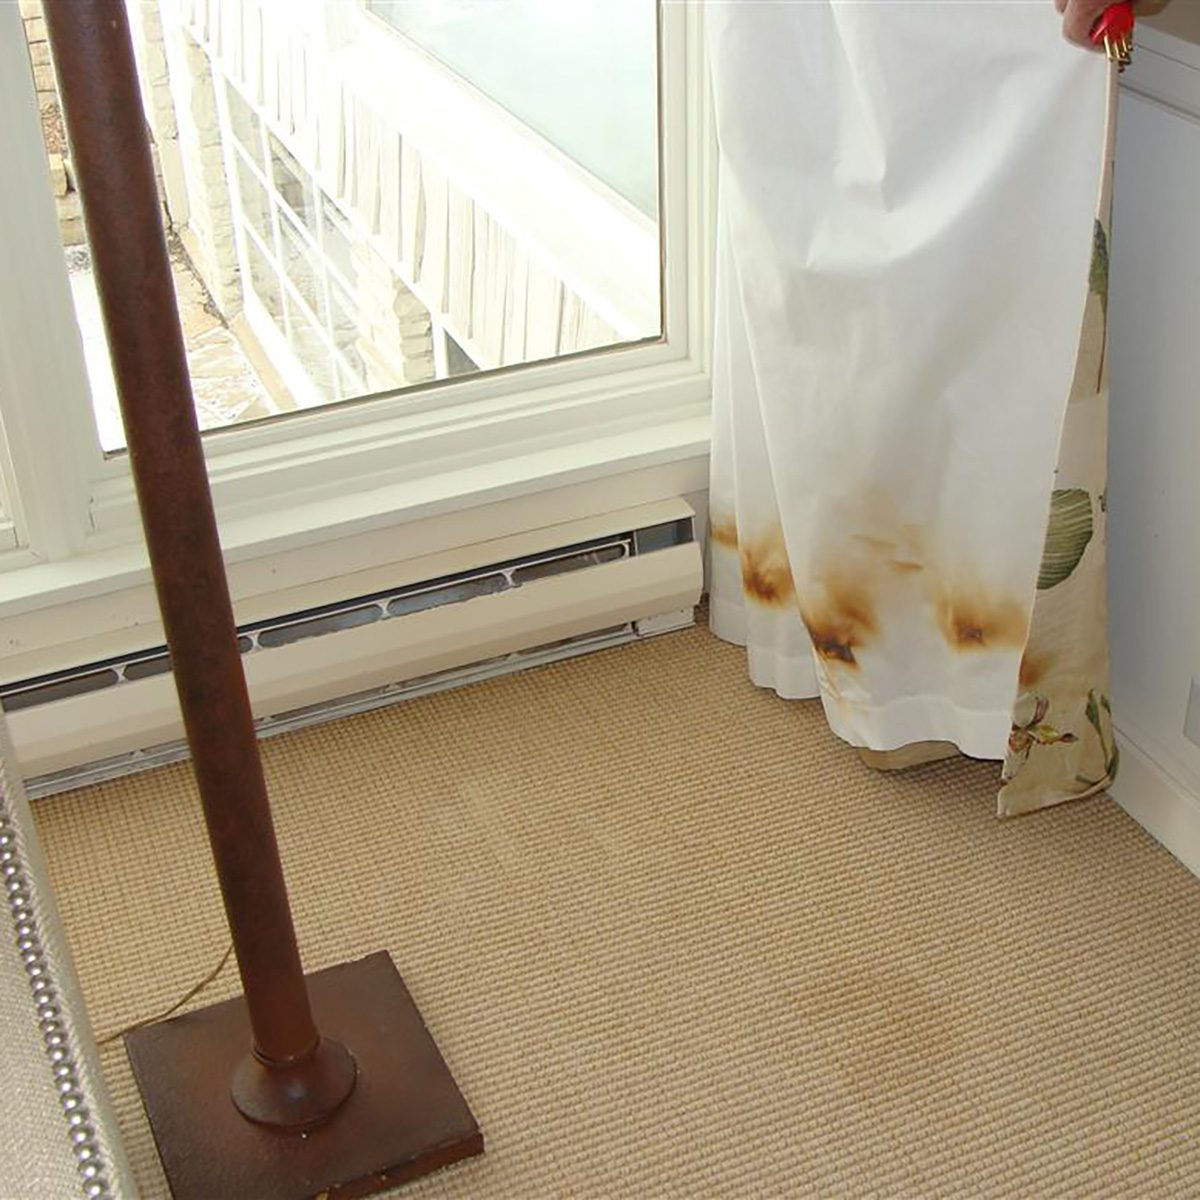 Singed curtains sitting too close to heater | Construction Pro Tips